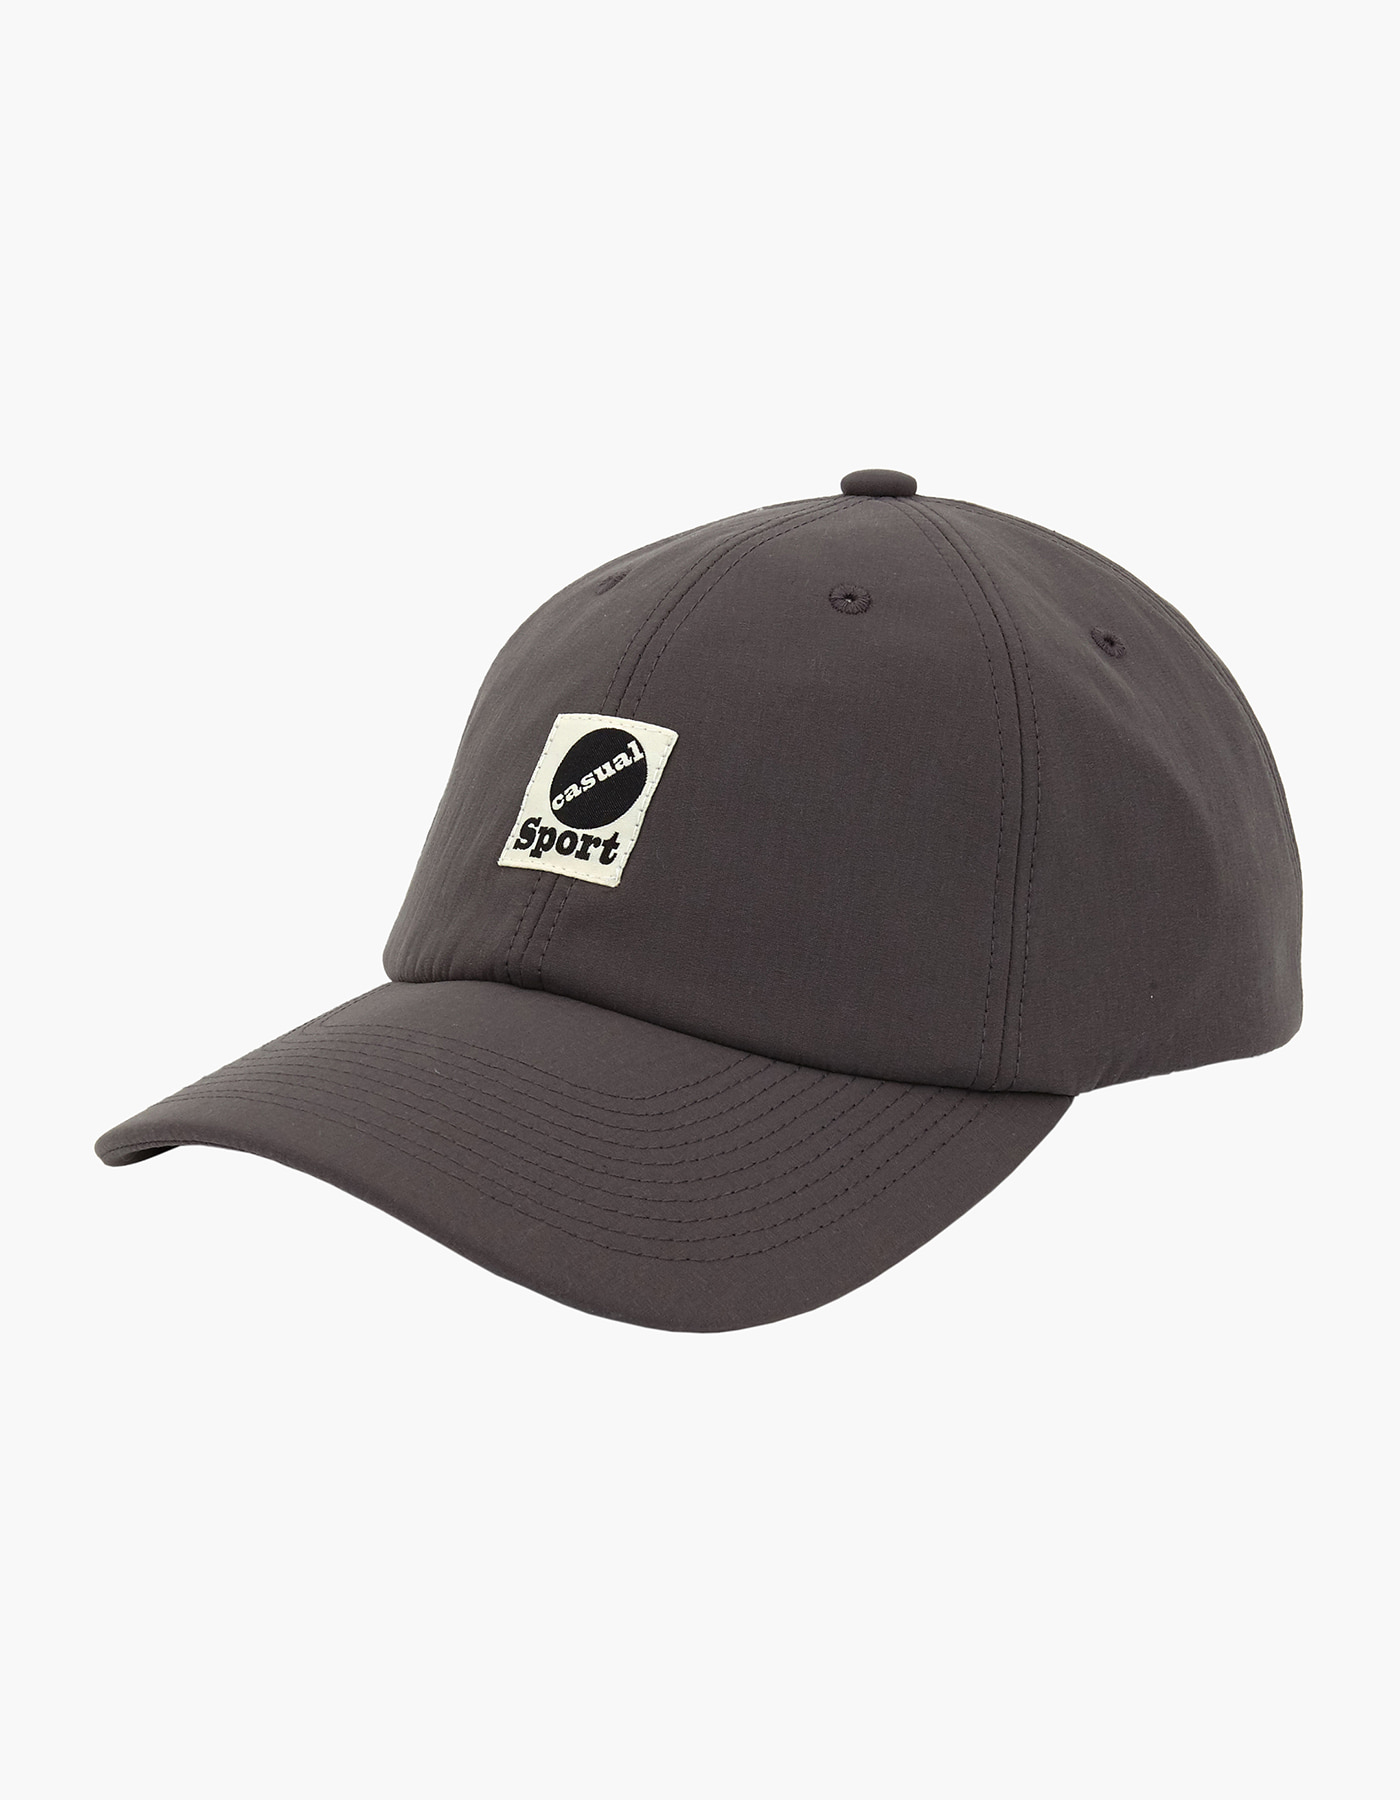 NYLON TAFFETA 6 PANEL CAP / CHARCOAL